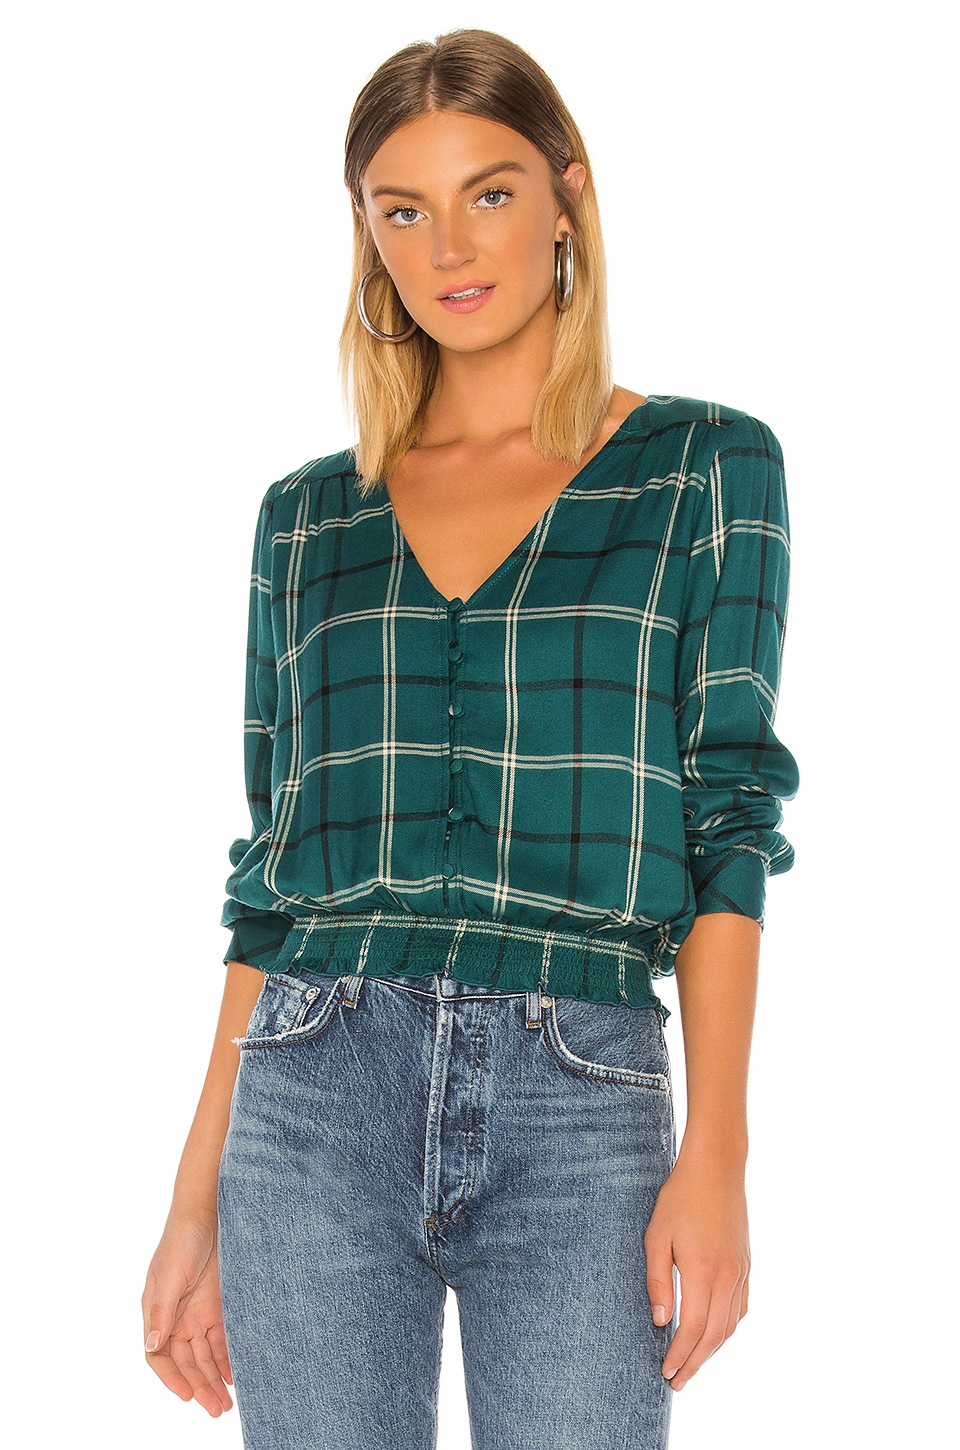 Sanctuary Fool For You Smocked Top en Mineral Plaid